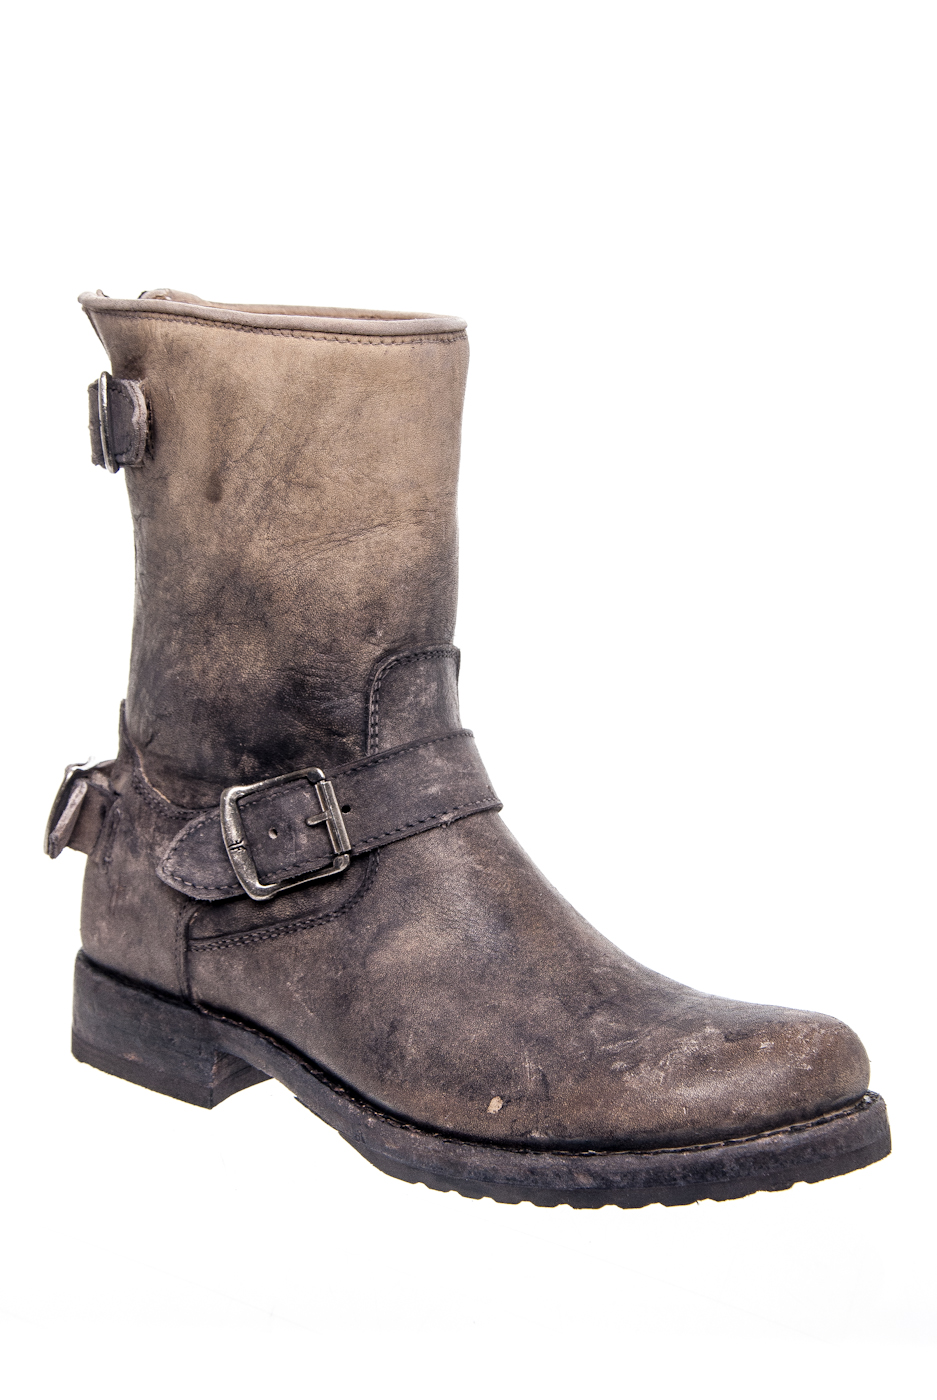 Frye Veronica Mid Calf Boots - Stone